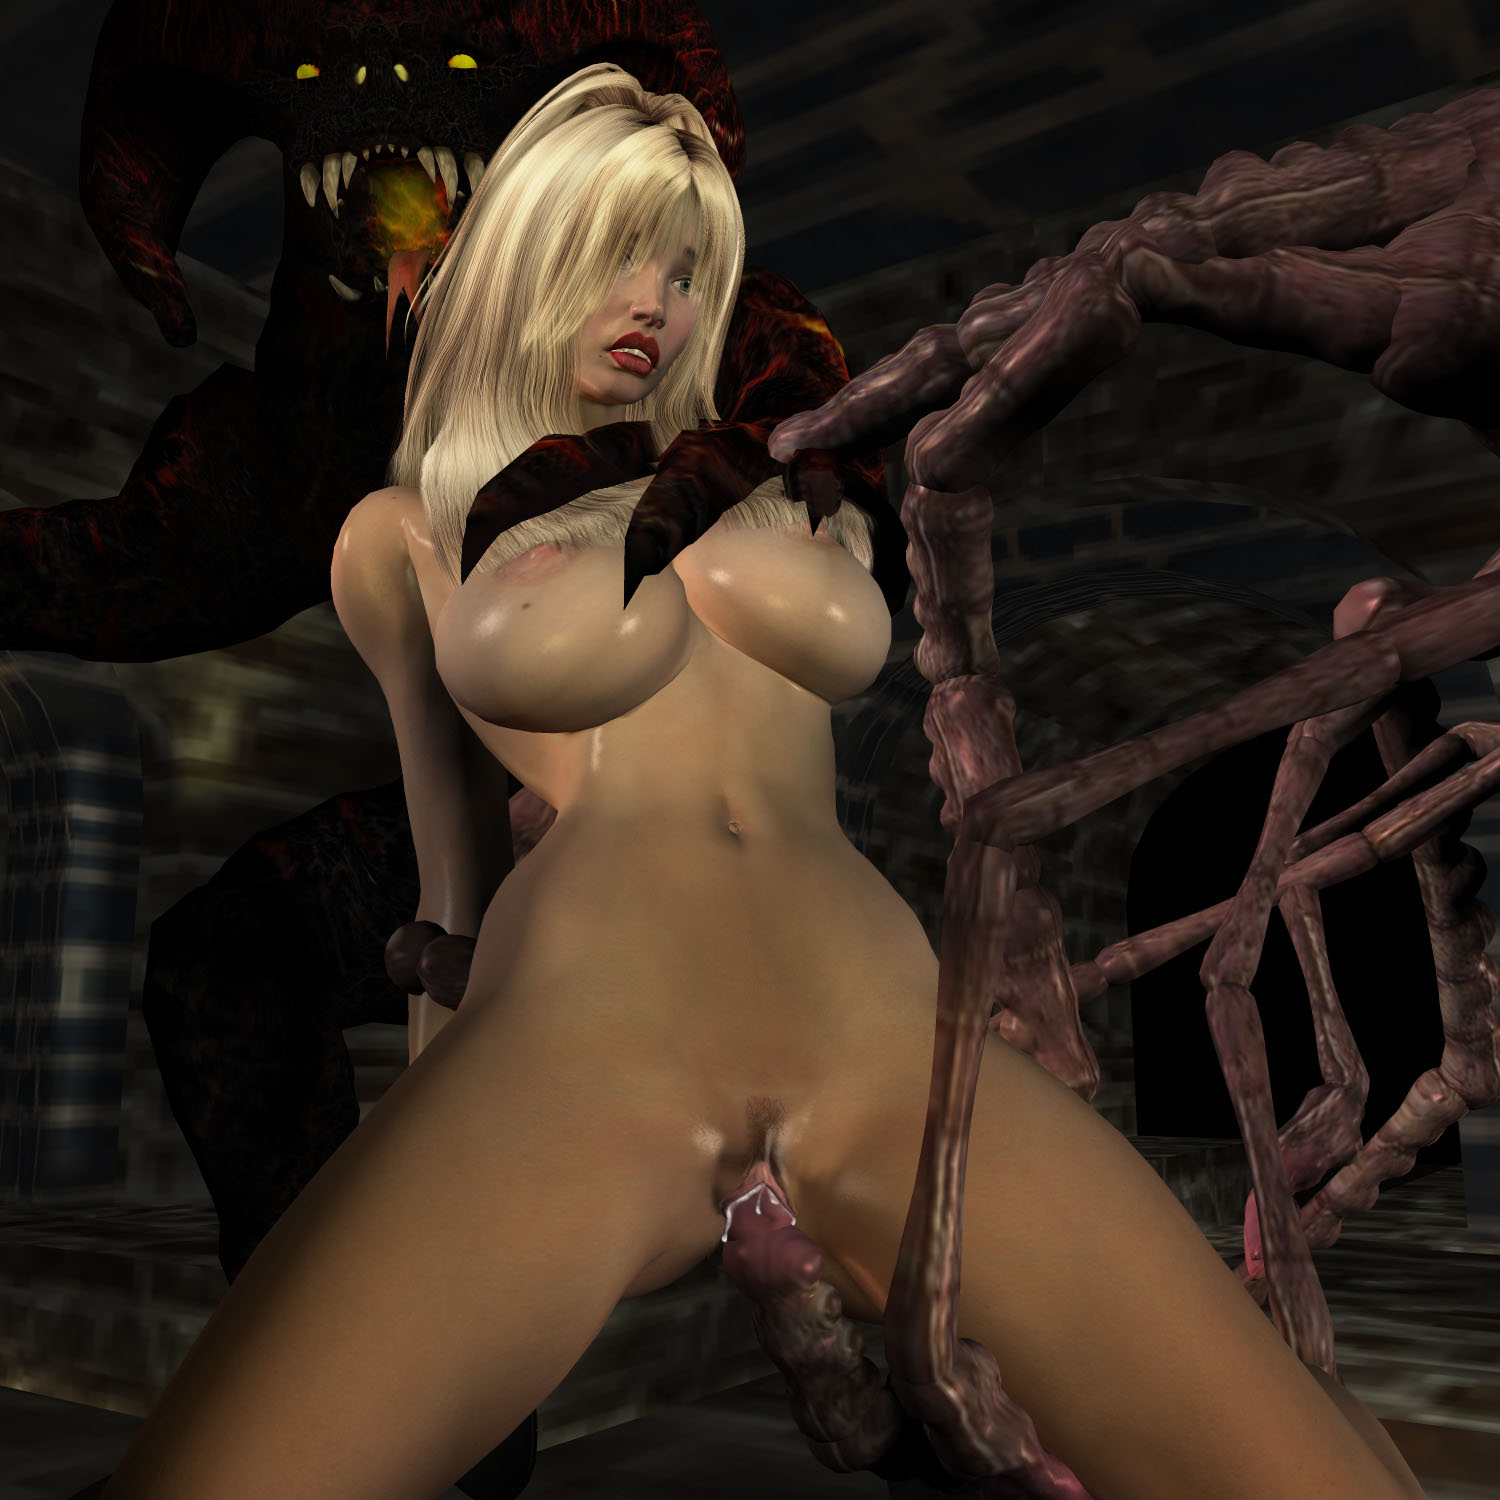 Porn 3d toons monster demon and girlsex  sexual images